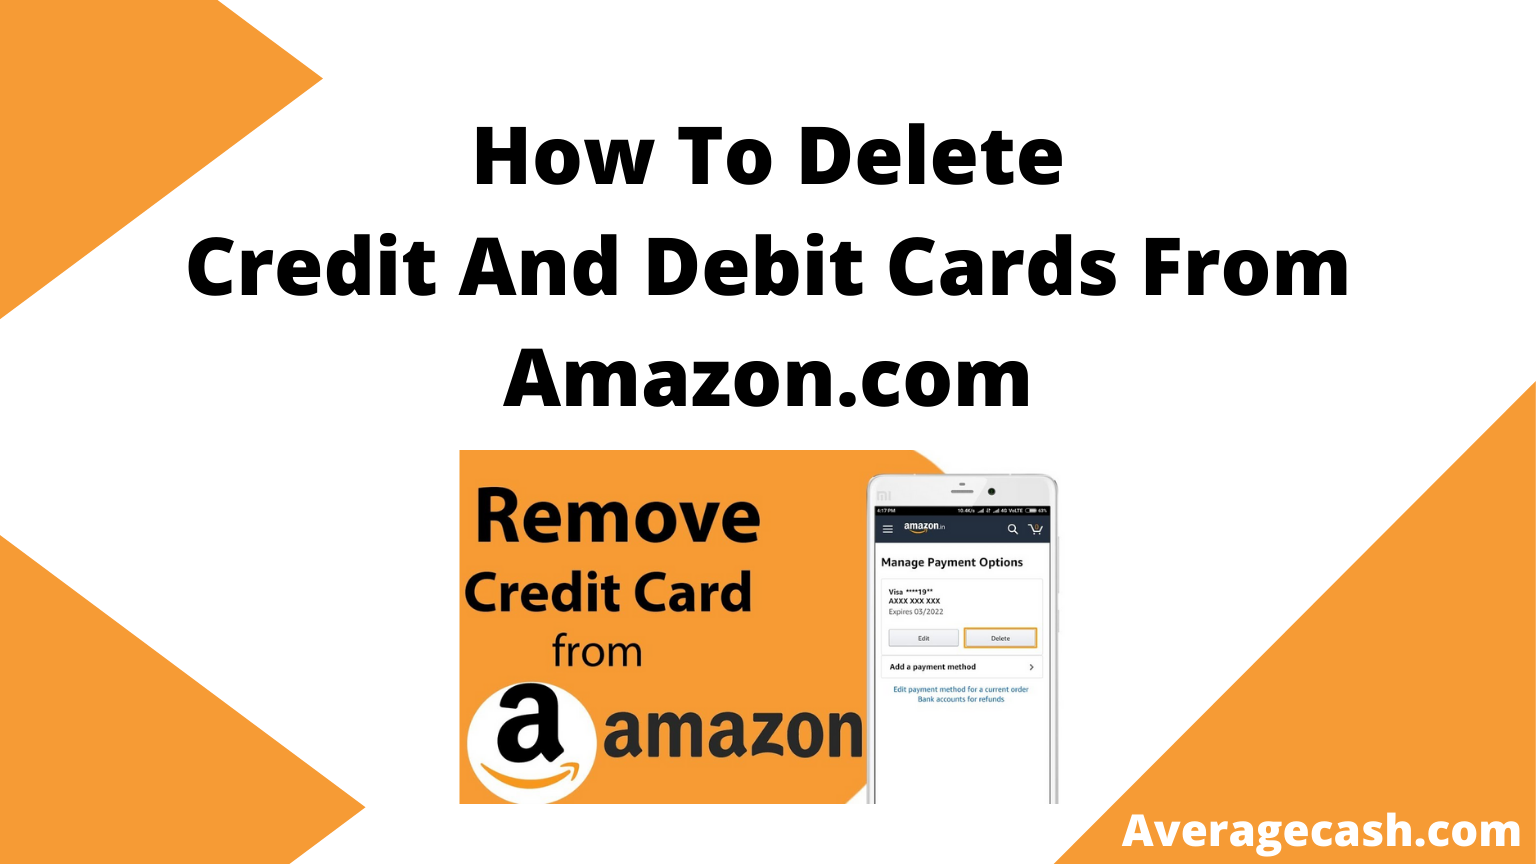 How To Delete Credit And Debit Cards From Amazon.com, August 2021